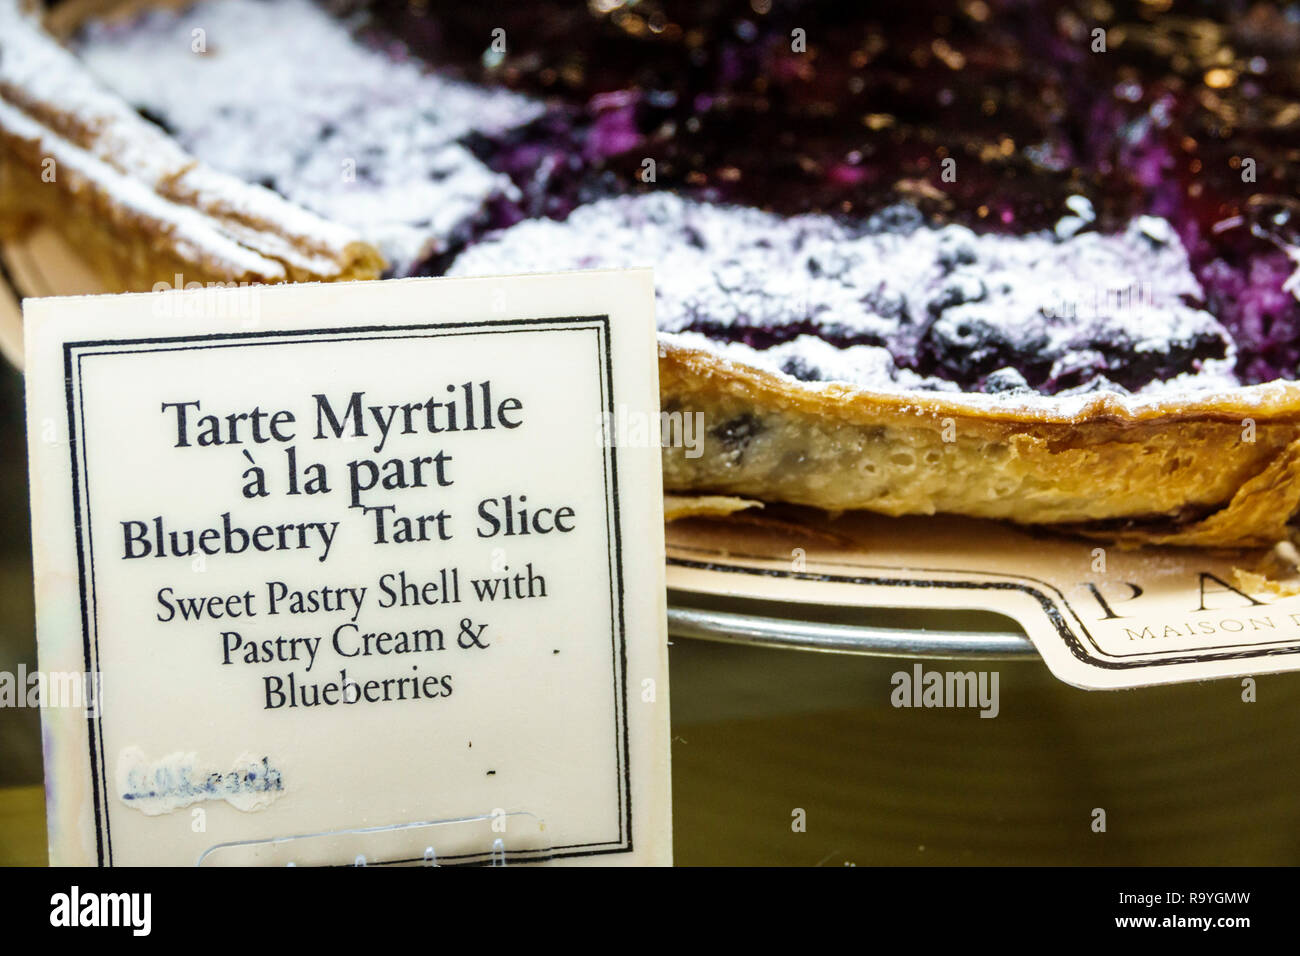 Fort Ft. Lauderdale Florida Sunrise Sawgrass Mills Mall Paul Maison de Qualite Bakery restaurant inside display sale blueberry tart slice dessert Stock Photo